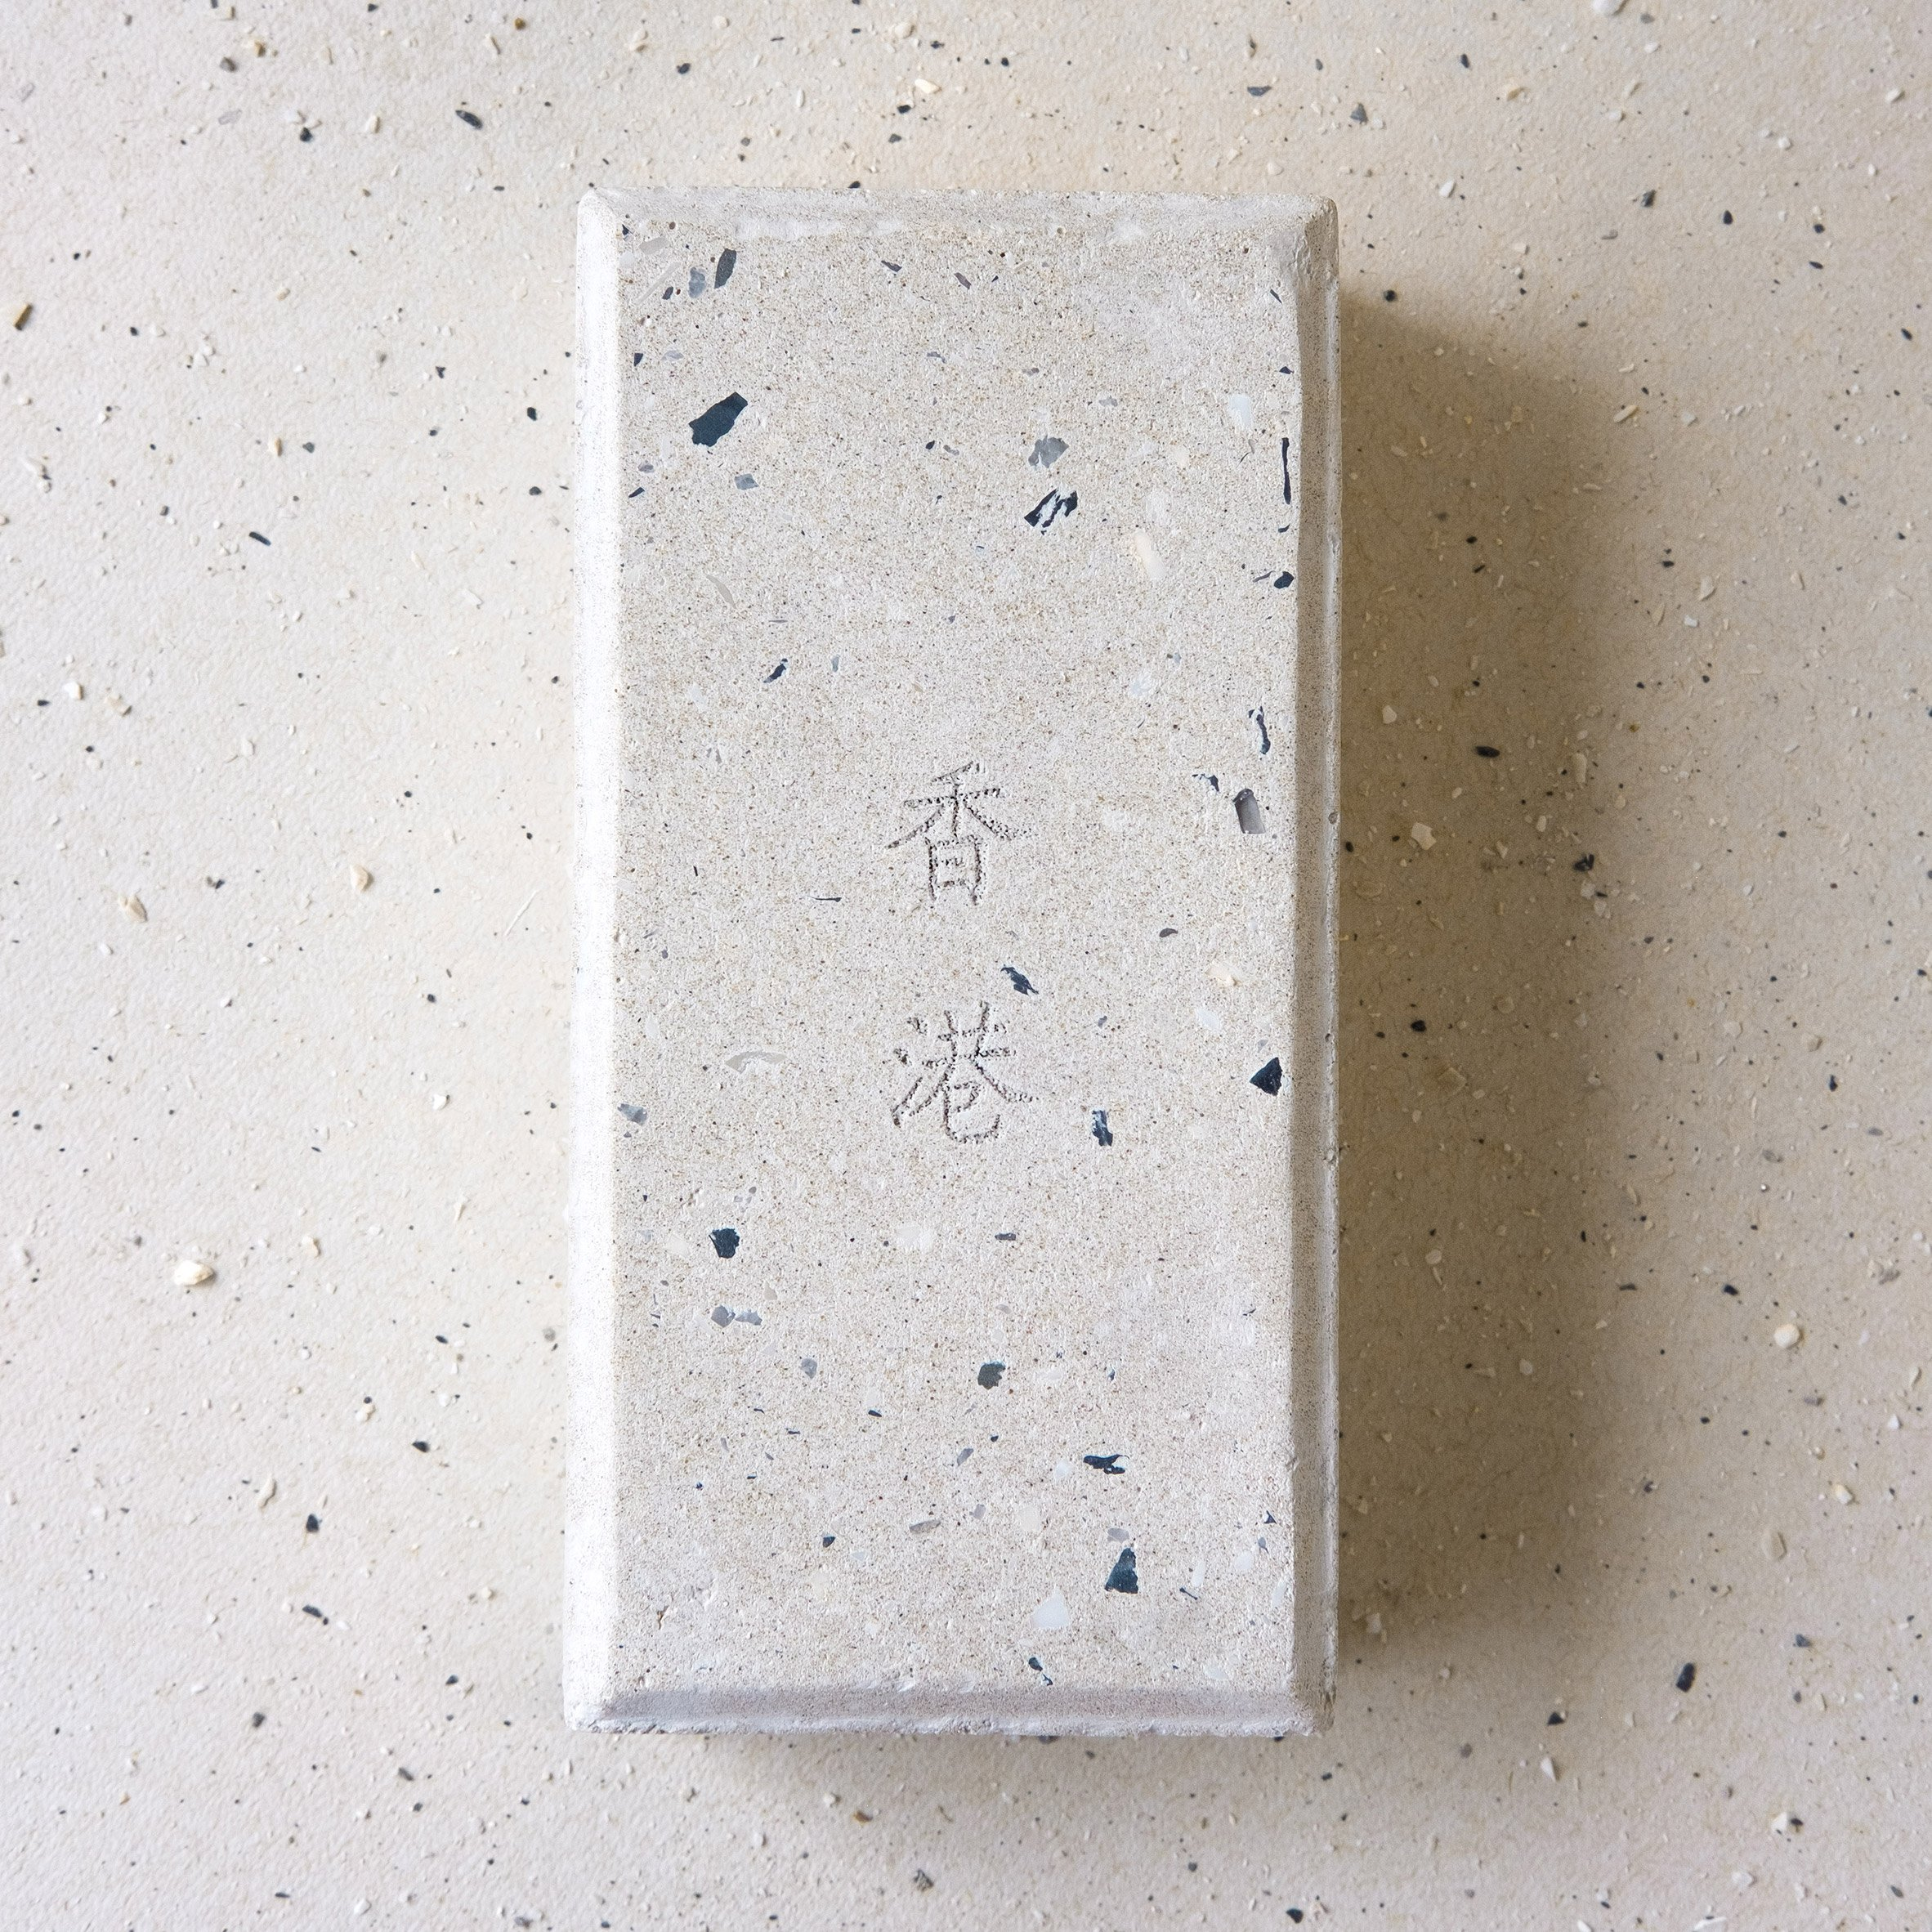 Hong Kong Brick by Studio Florian and Christine for Design Trust Critically Homemade exhibition